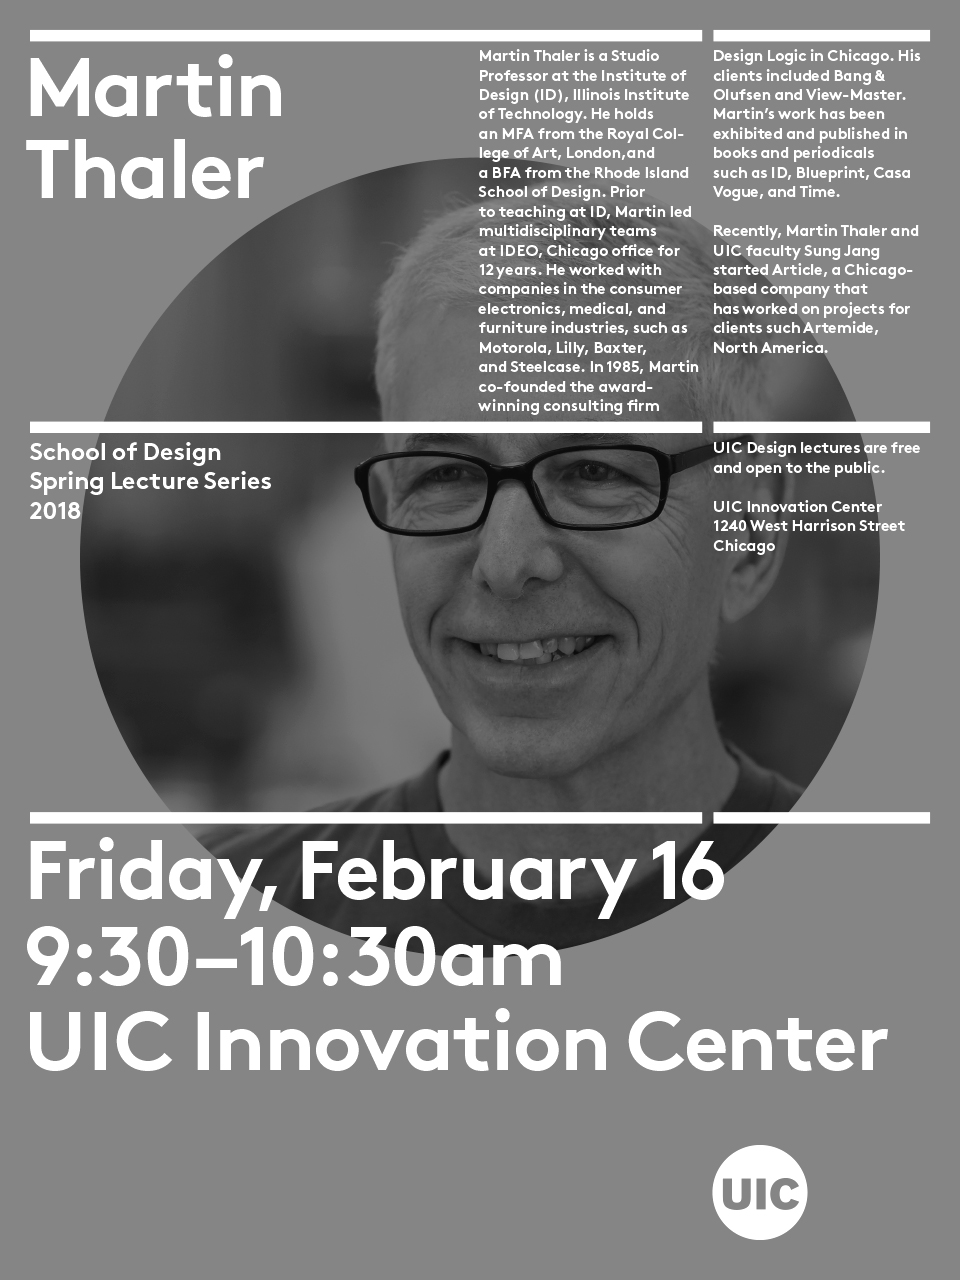 Spring lecture series martin thaler uic school of design martin thaler is a studio professor at the institute of design id illinois institute of technology he holds an mfa from the royal college of art malvernweather Images